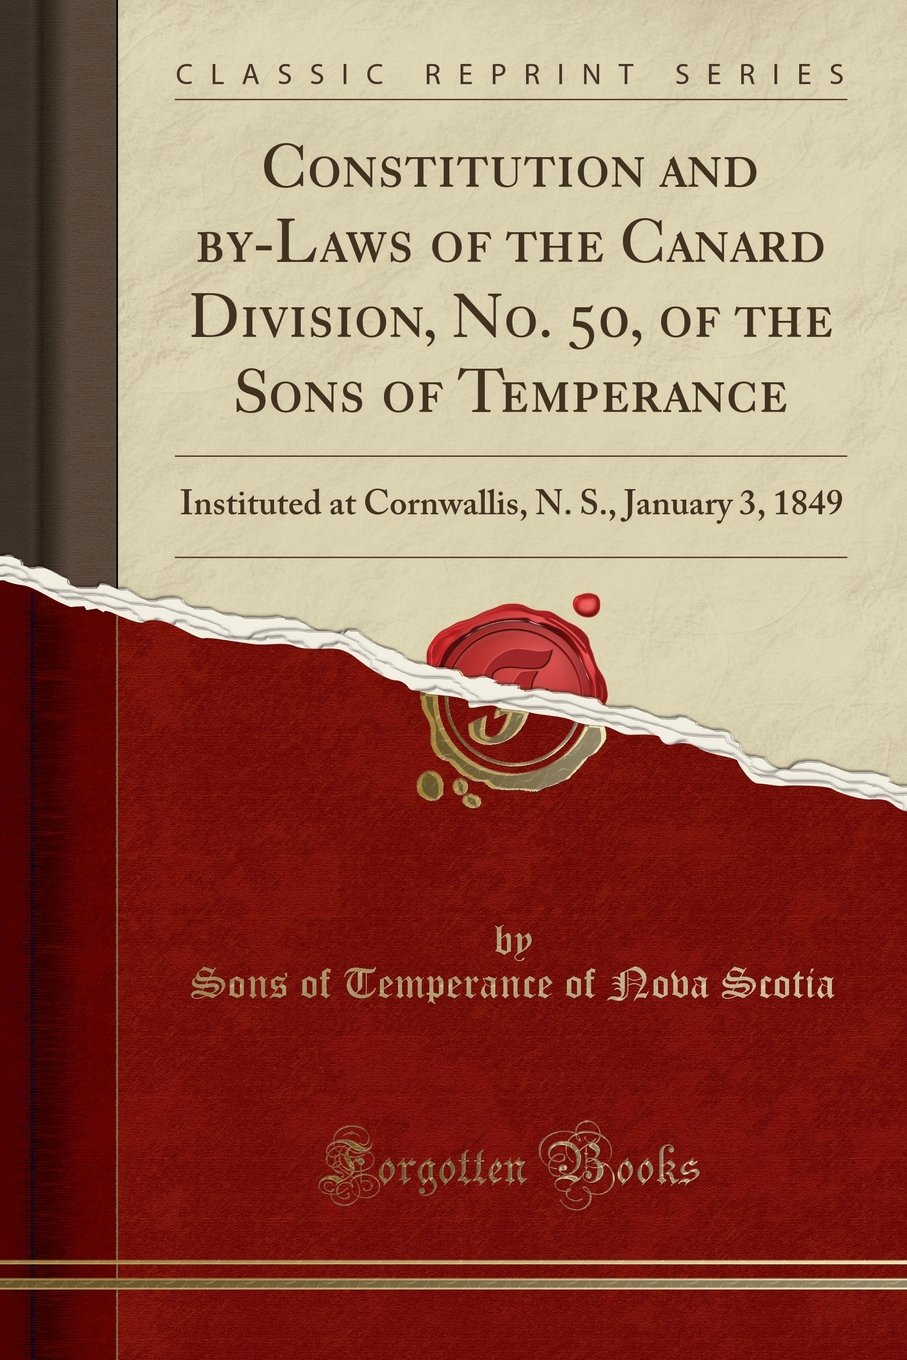 Read Online Constitution and by-Laws of the Canard Division, No. 50, of the Sons of Temperance: Instituted at Cornwallis, N. S., January 3, 1849 (Classic Reprint) Text fb2 ebook